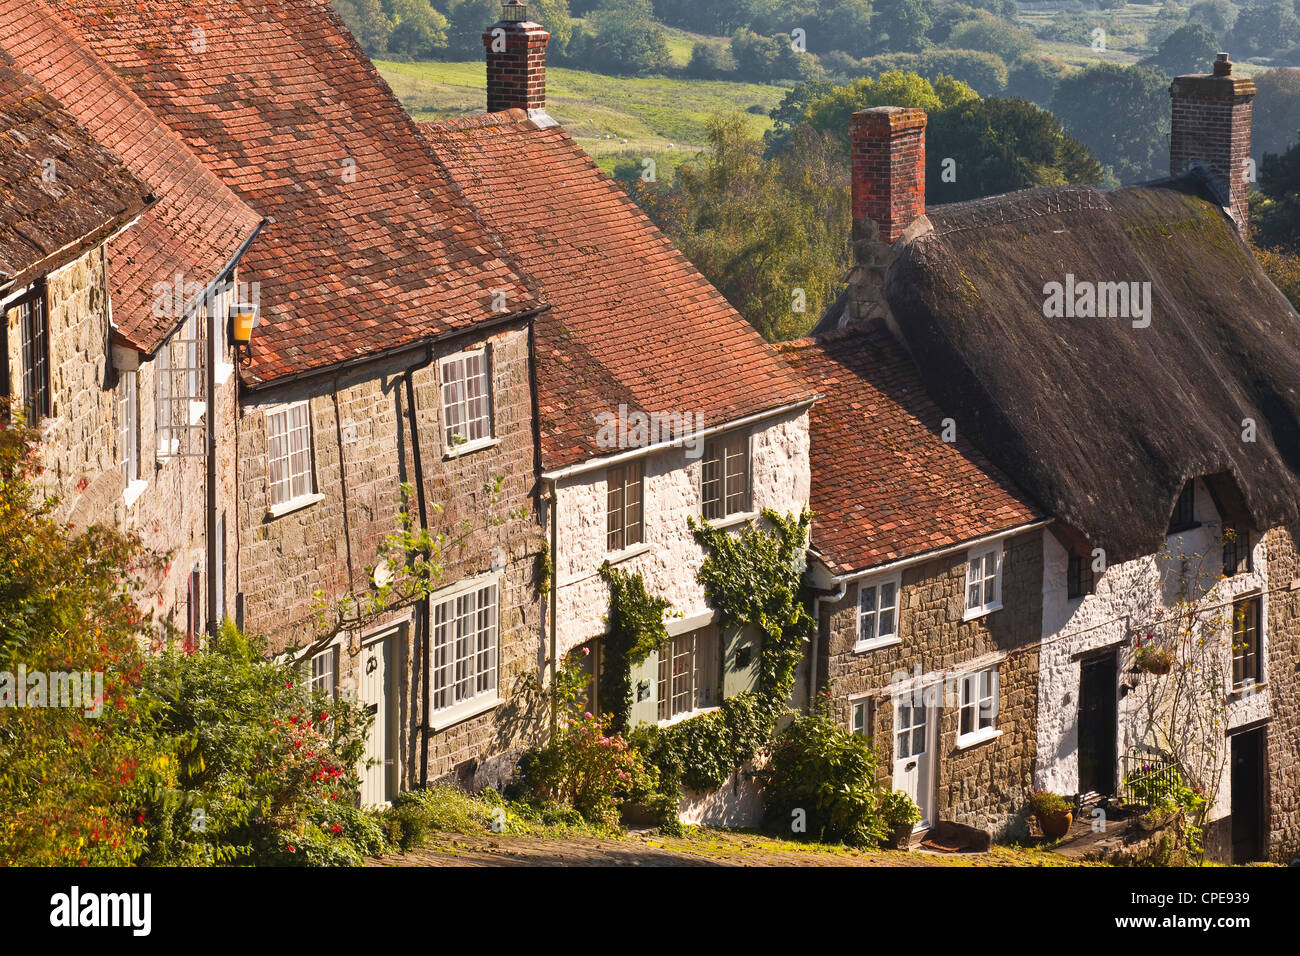 The famous cobbled street of Gold Hill in Shaftesbury, Dorset, England, United Kingdom, Europe Stock Photo